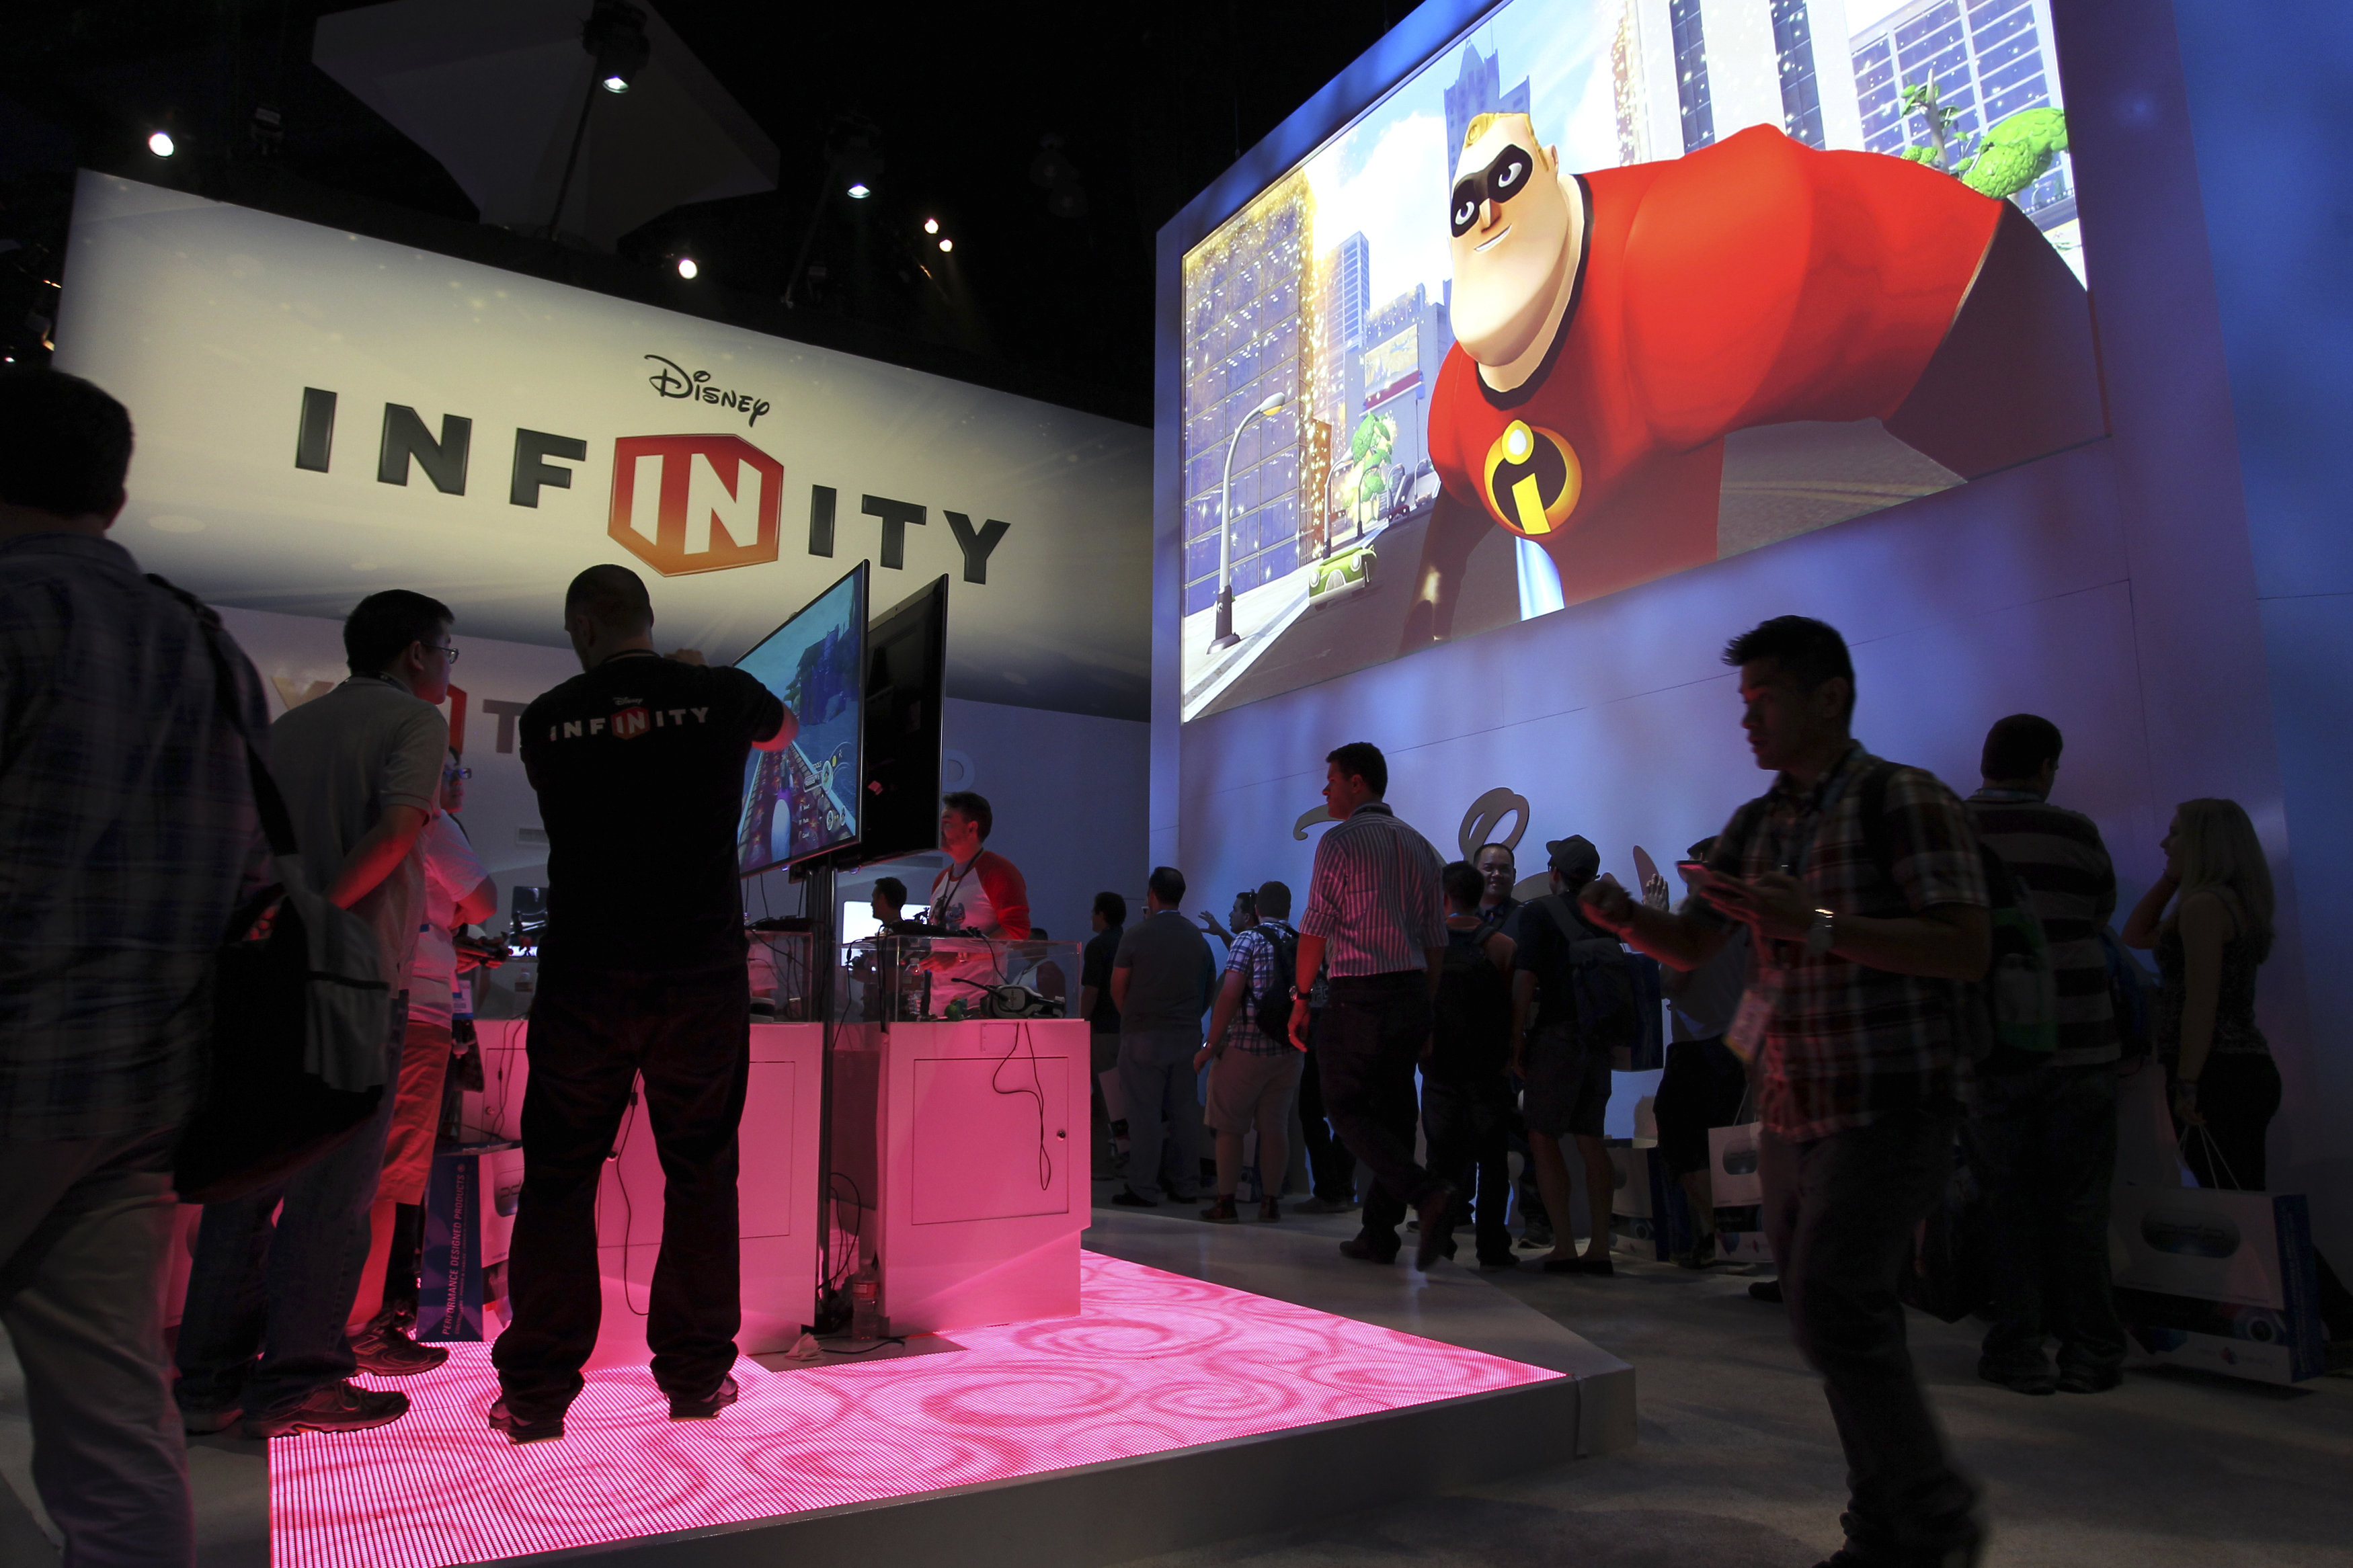 Disney cancels Infinity games, quits game development entirely